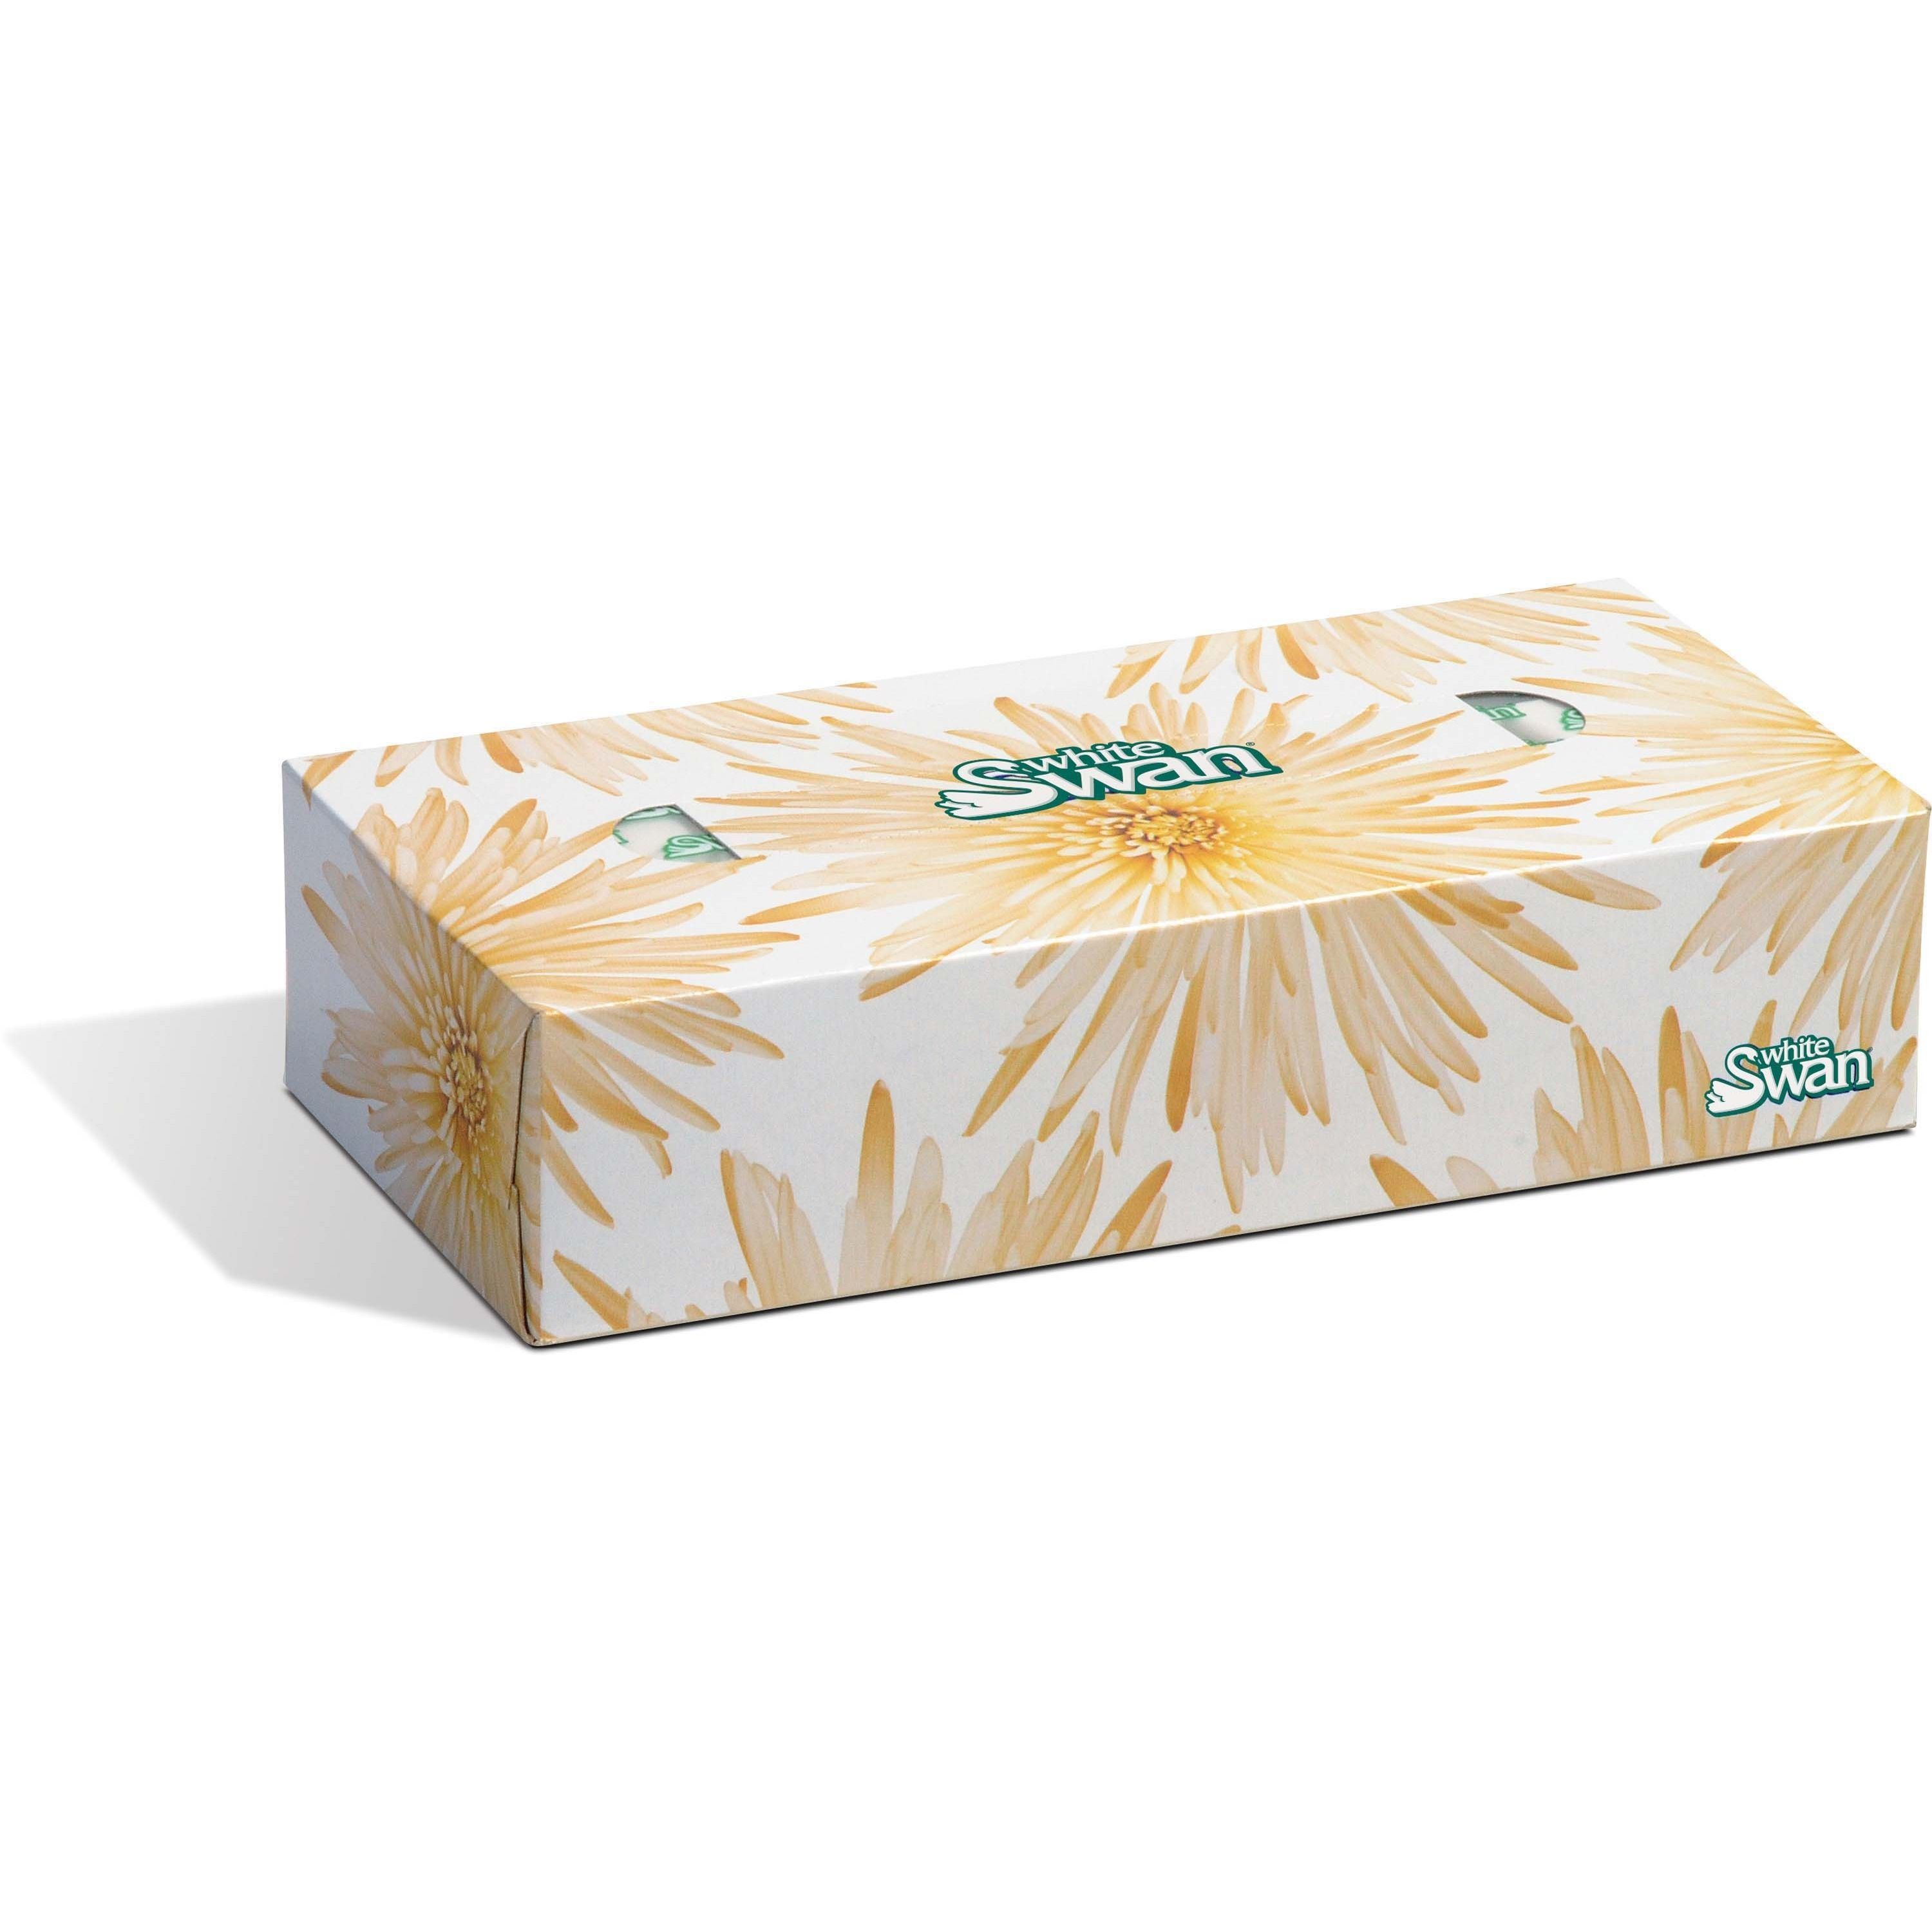 Brownie reccomend Facial tissue industry